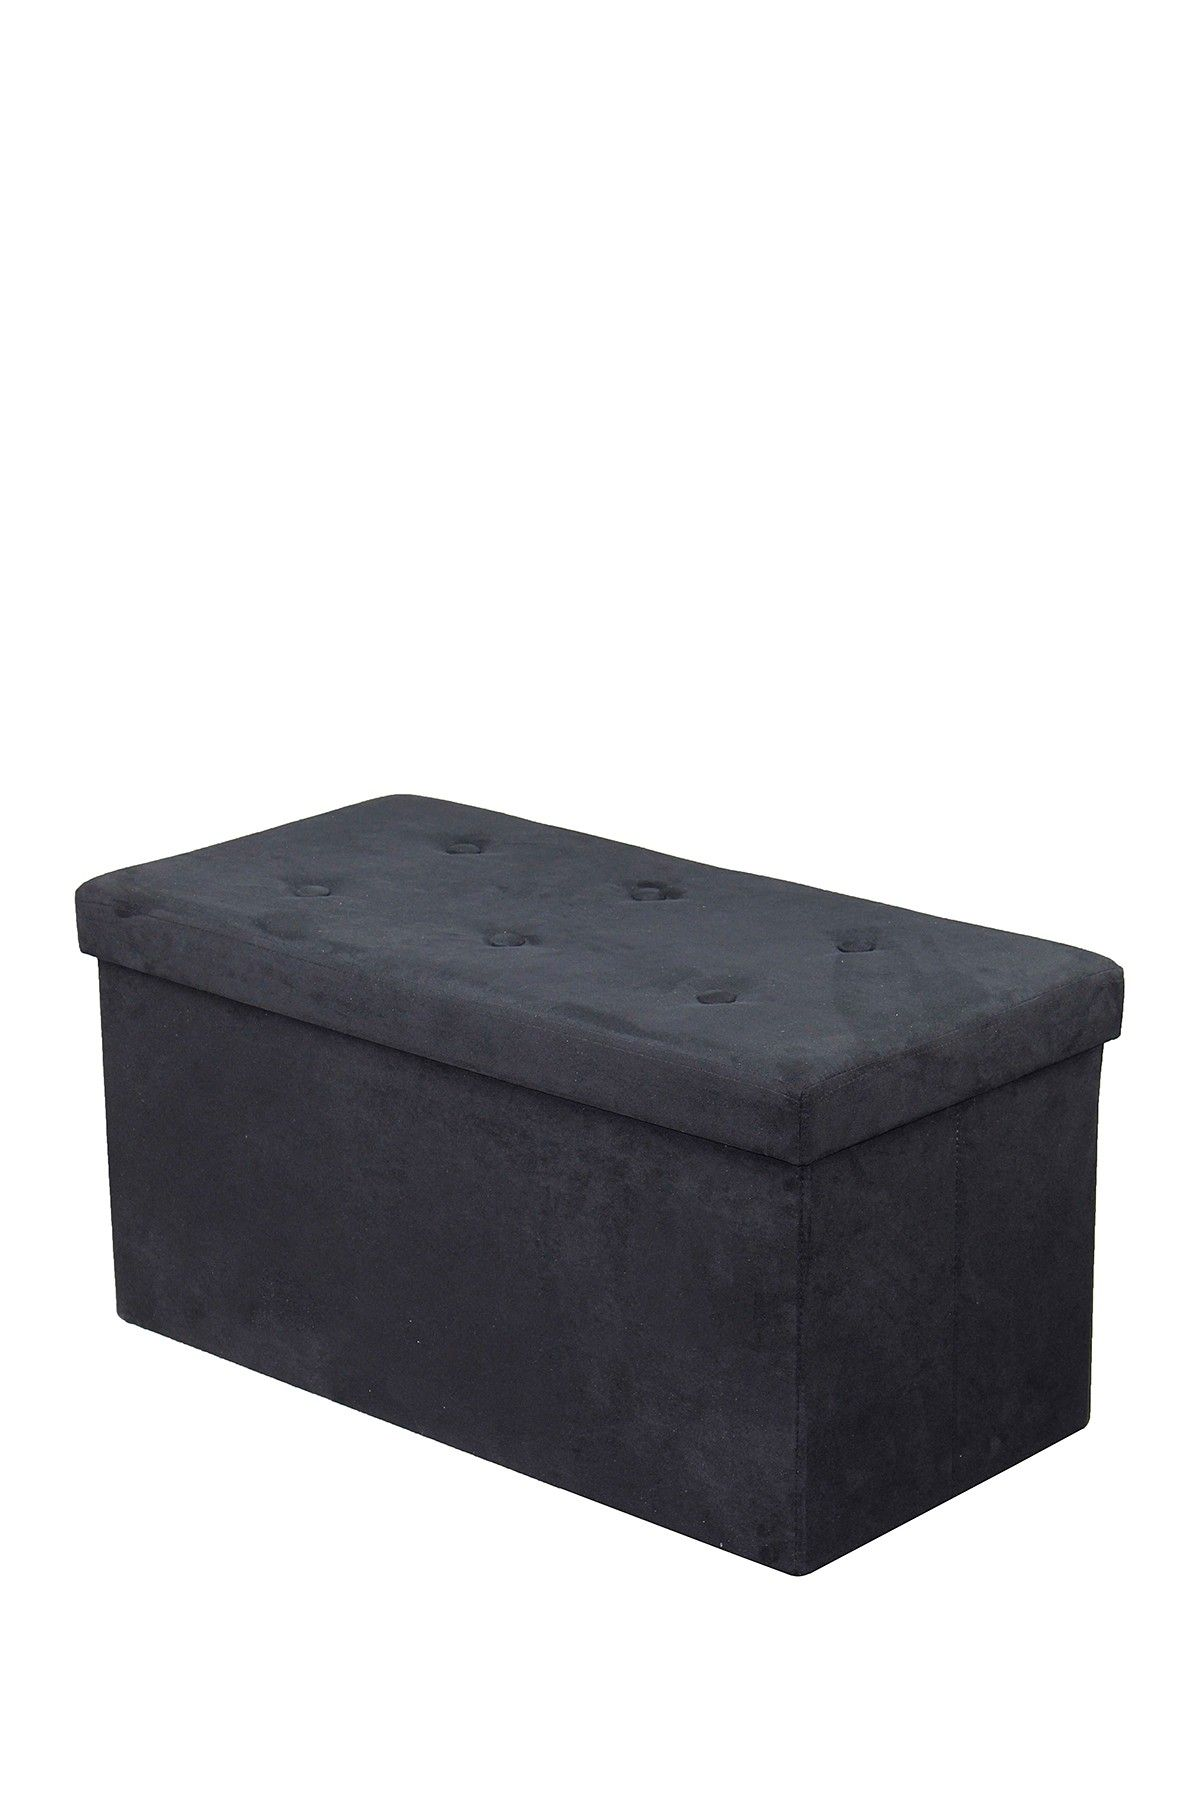 Sorbus Faux Suede Foldable Storage Bench - Black  sc 1 st  Pinterest & Sorbus Faux Suede Foldable Storage Bench - Black | home design ...